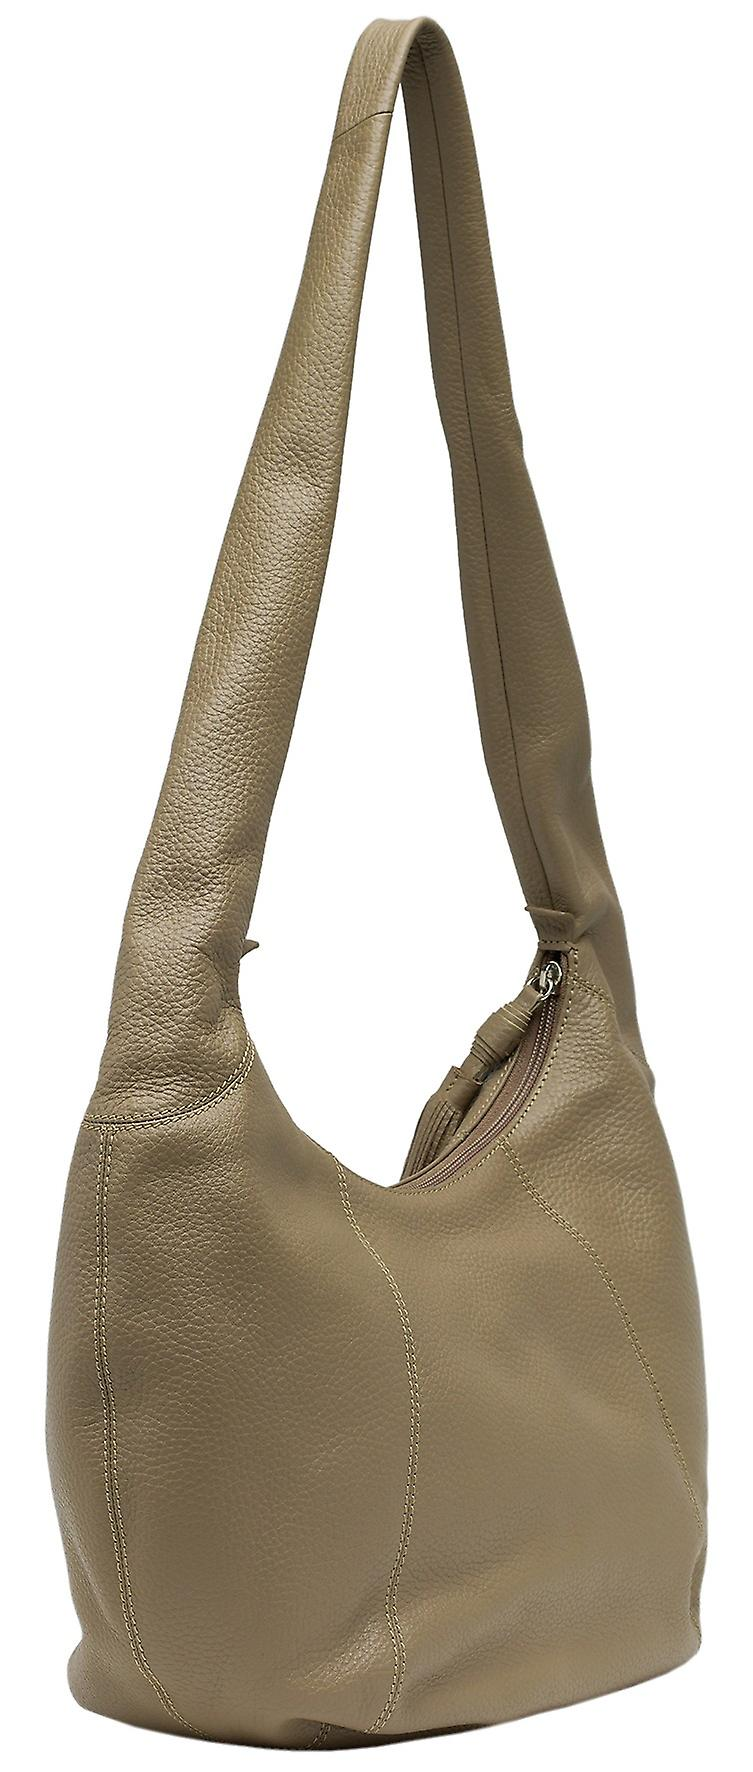 Burgmeister ladies shoulder bag T220-215B leather taupe